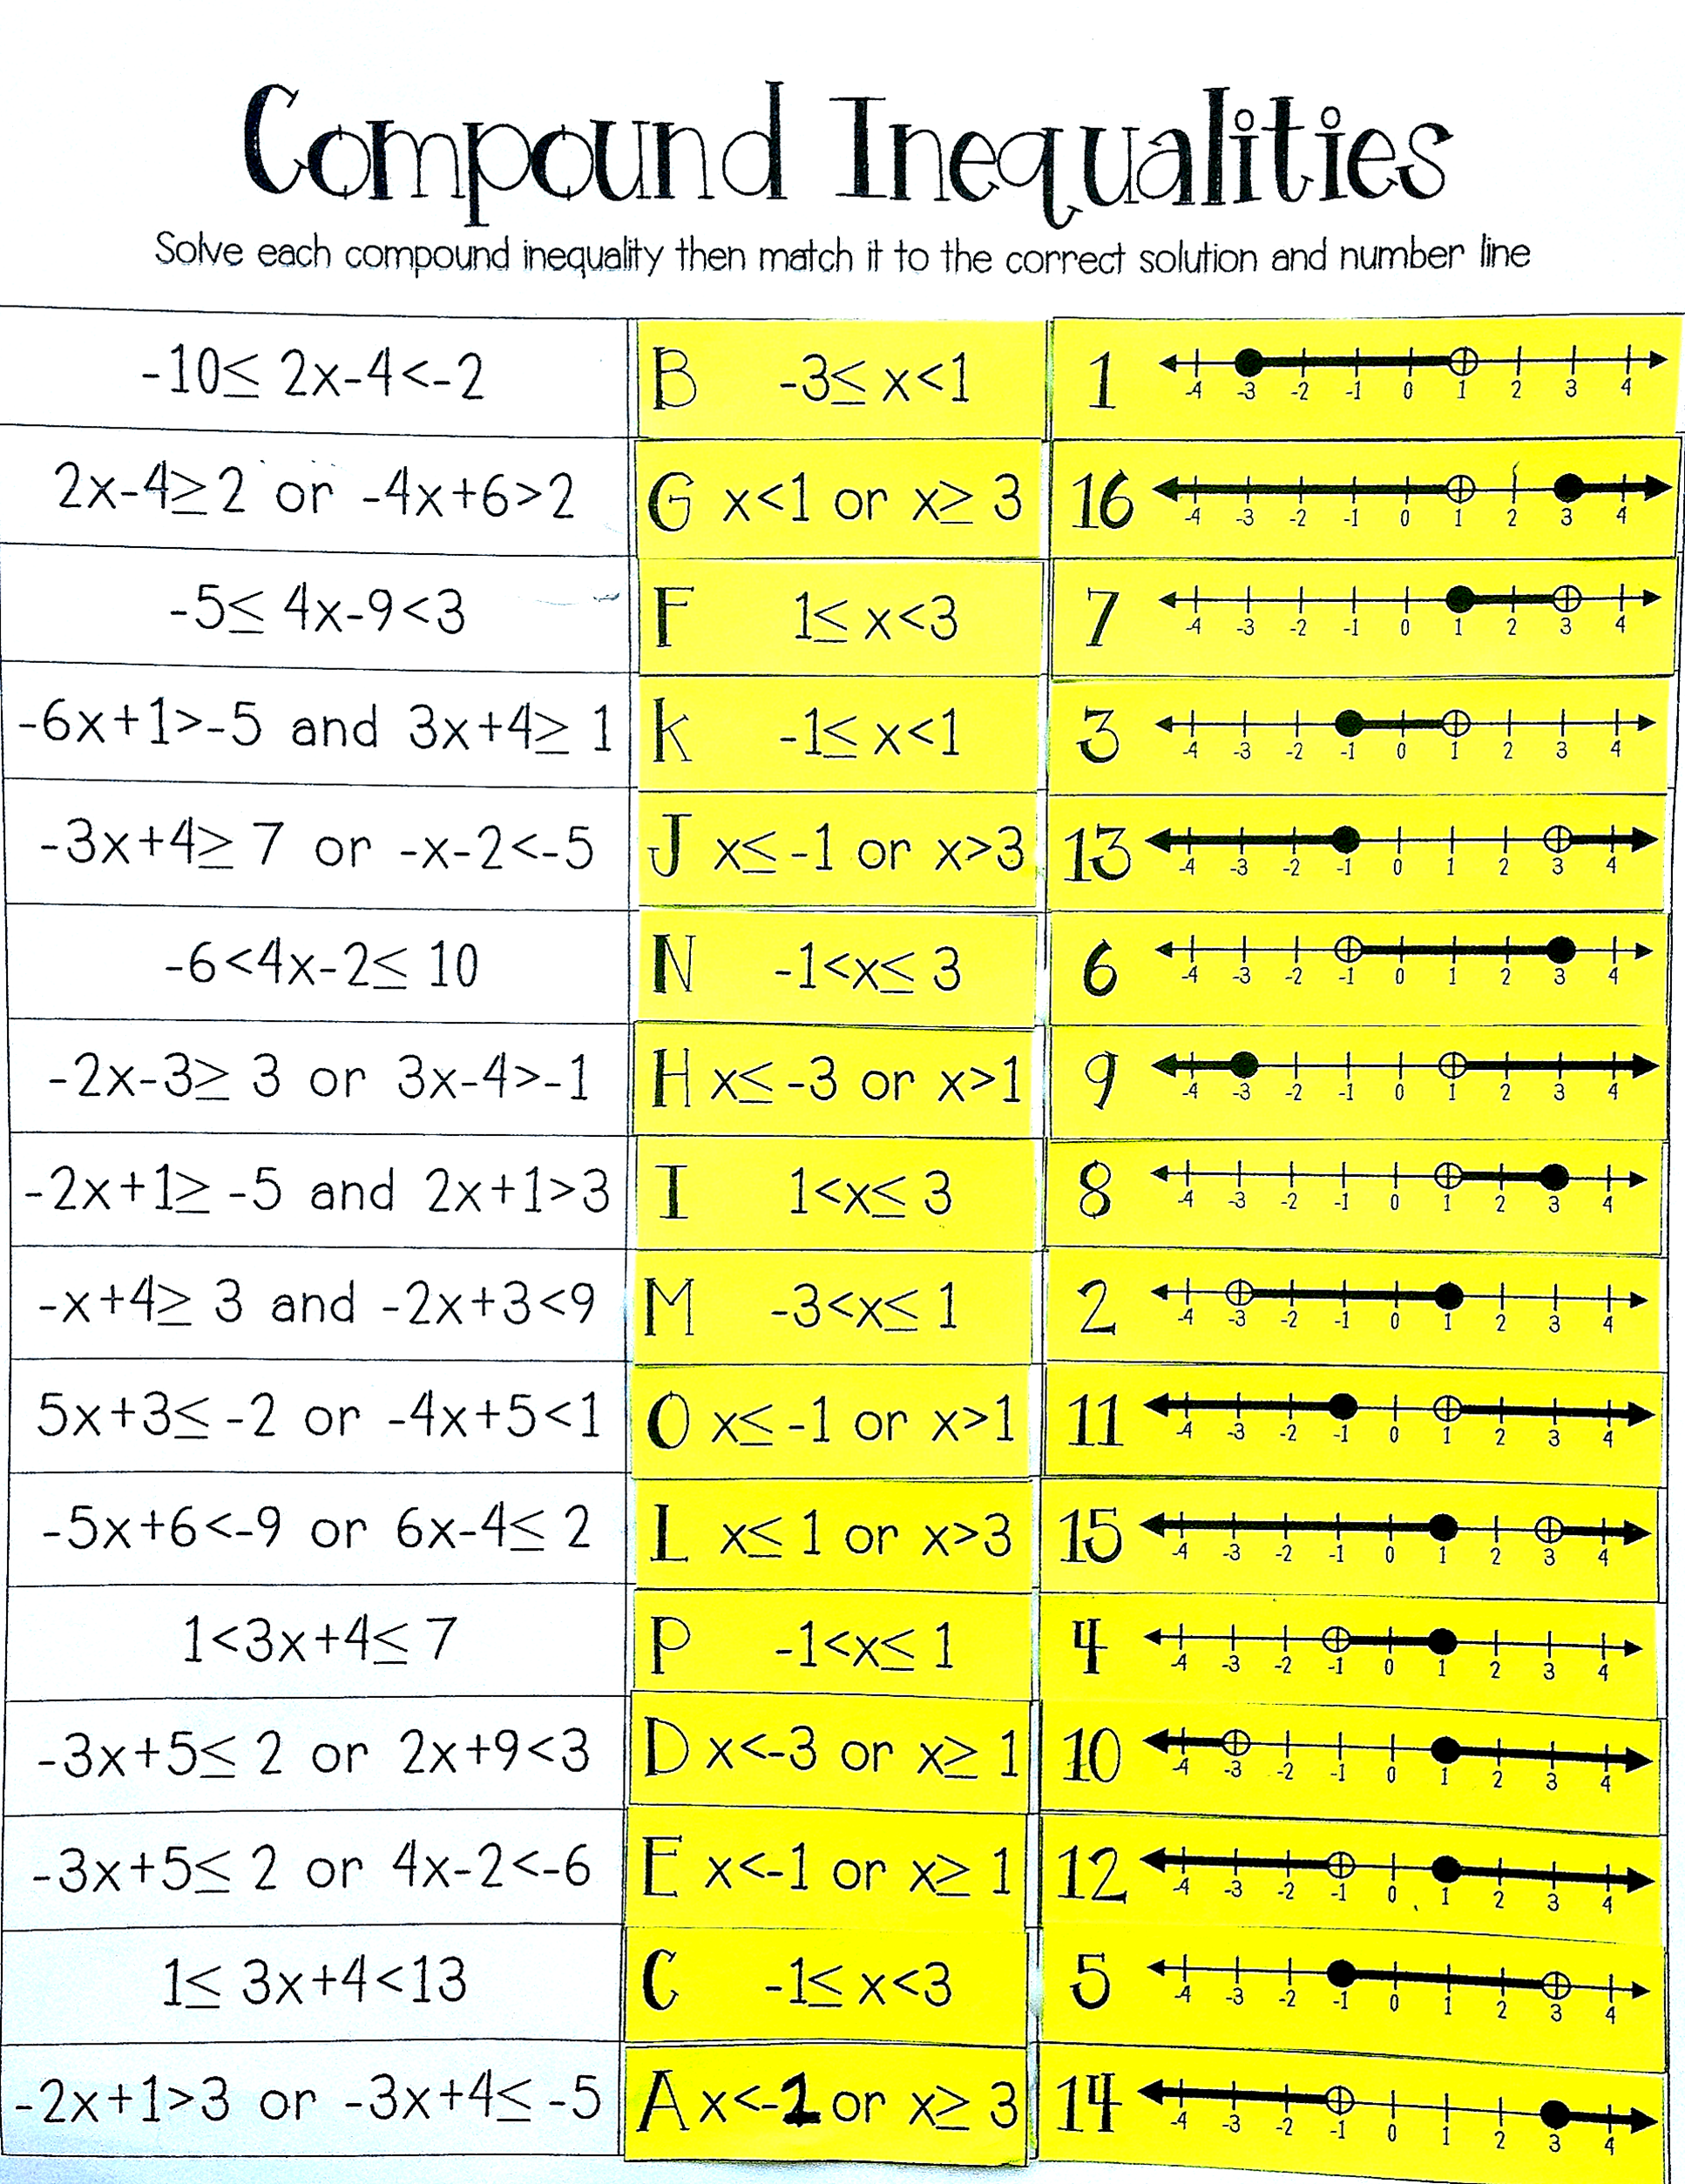 Compound Inequalities Card Match Activity - Distance